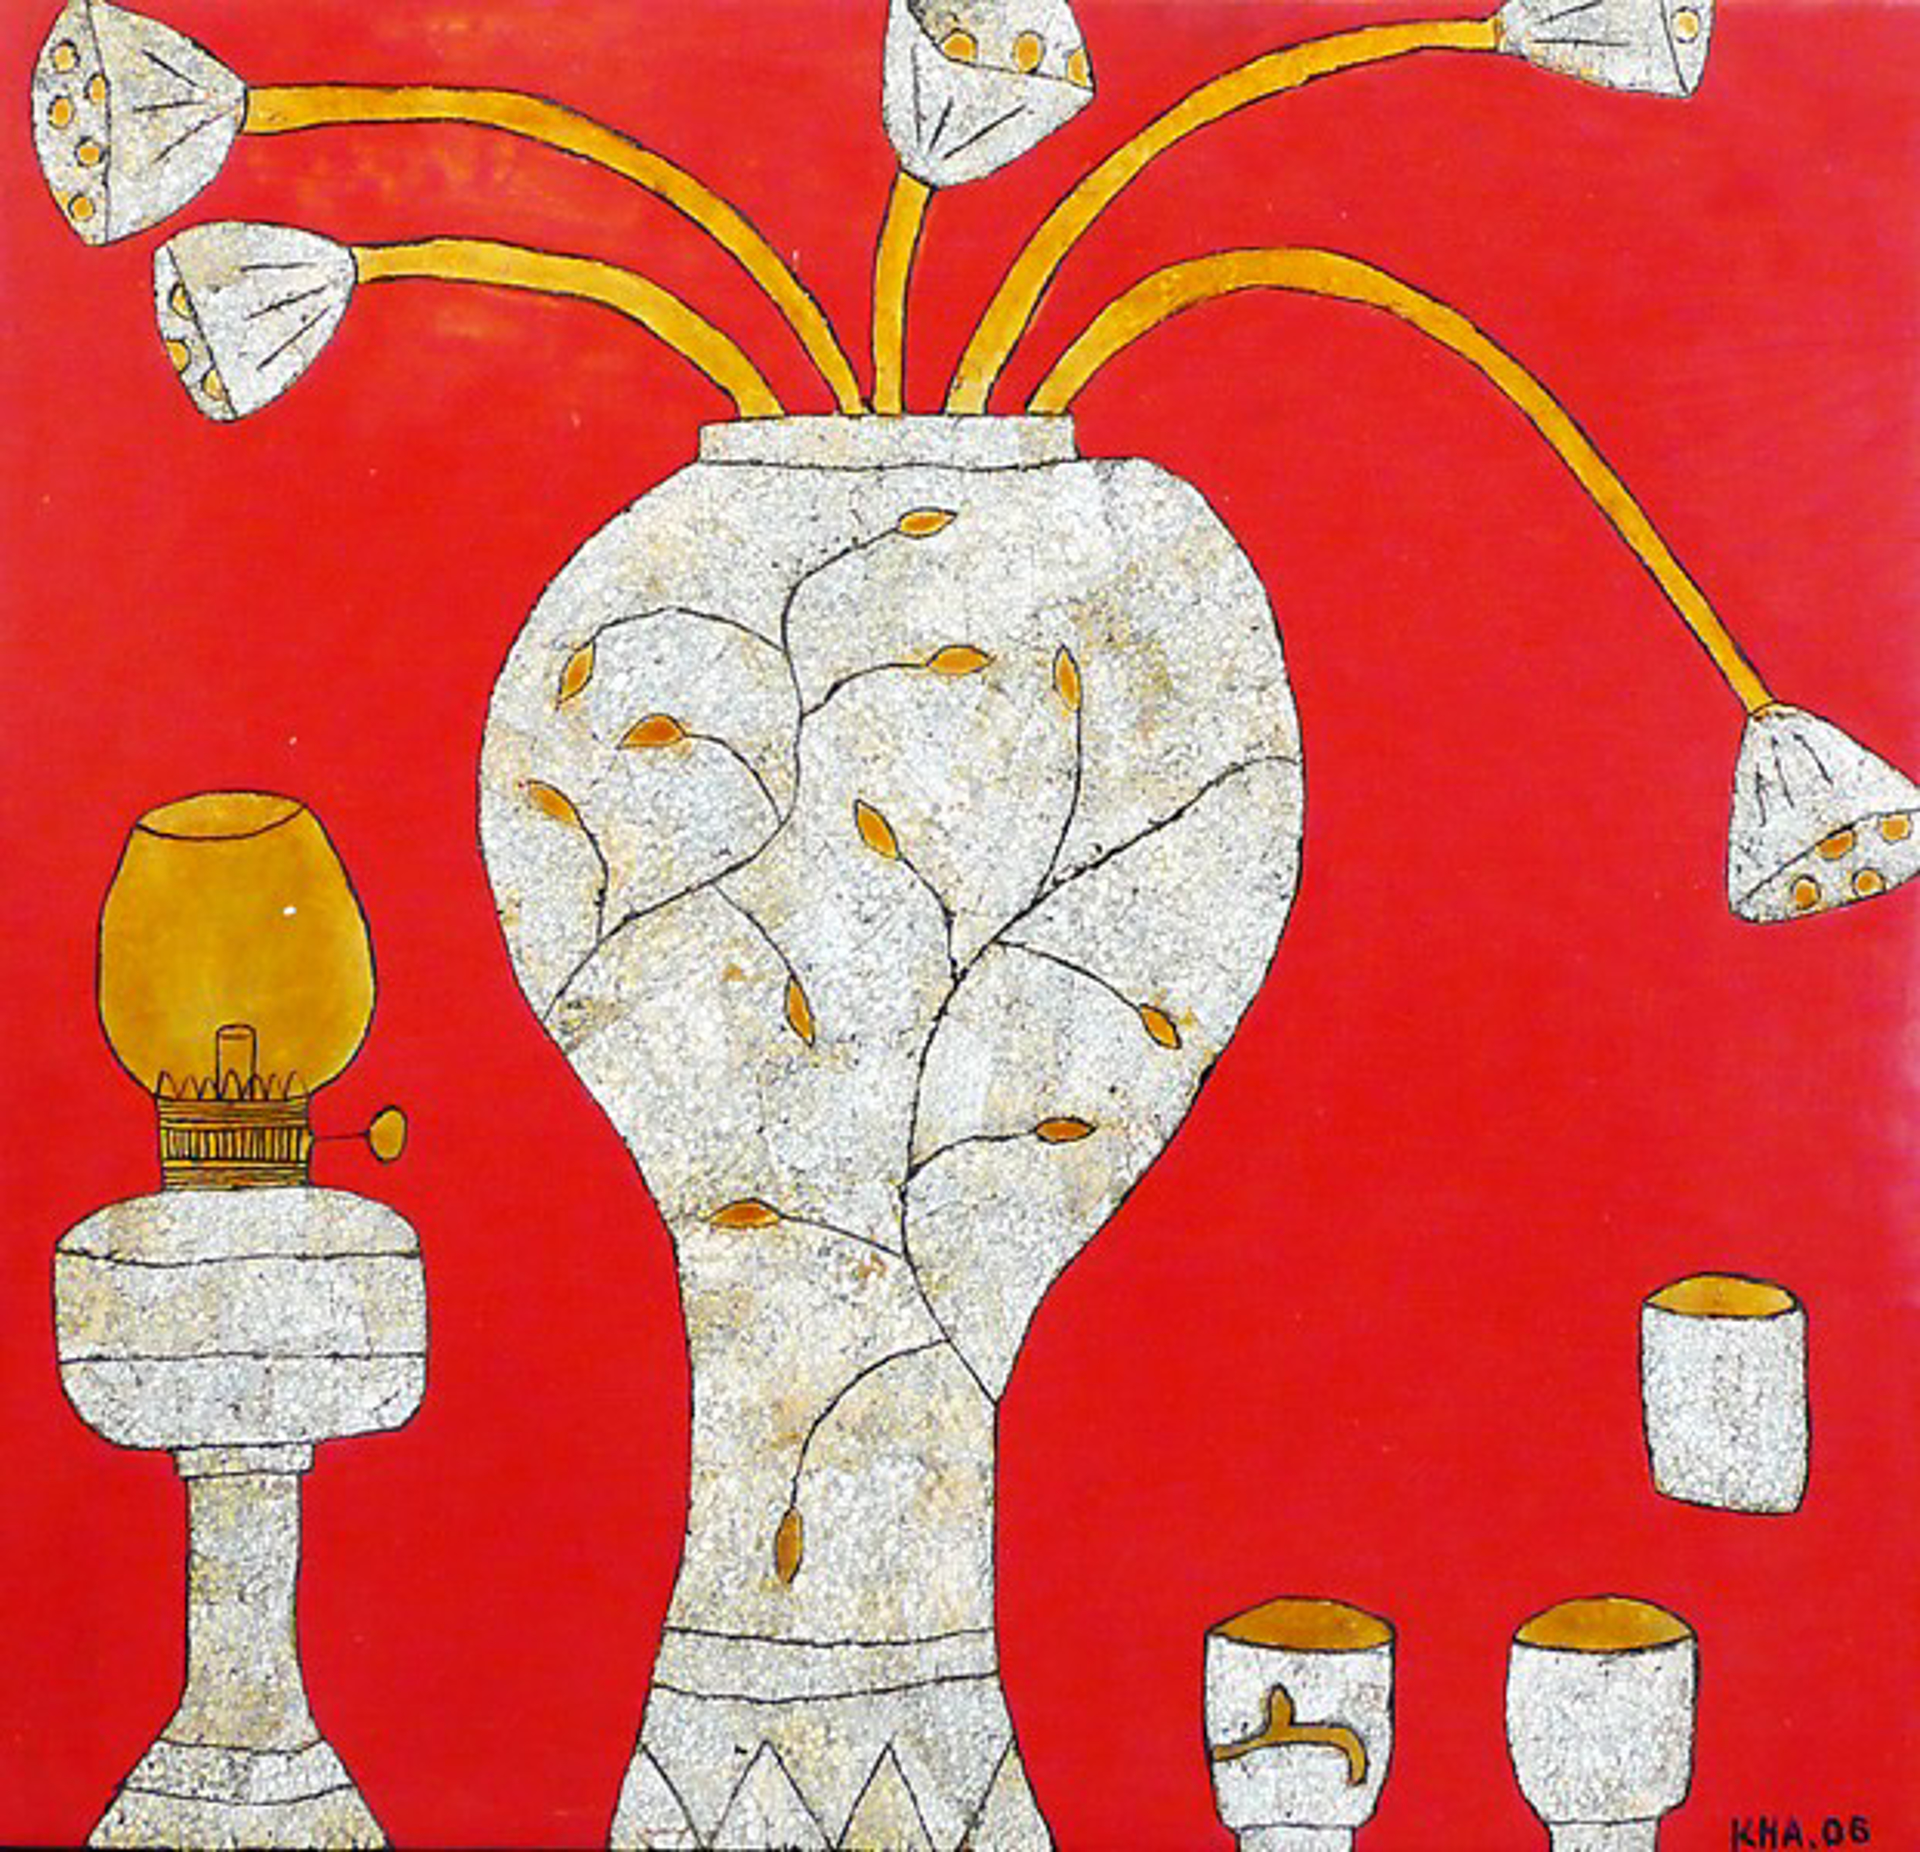 Still Life by Bui Cong Khanh